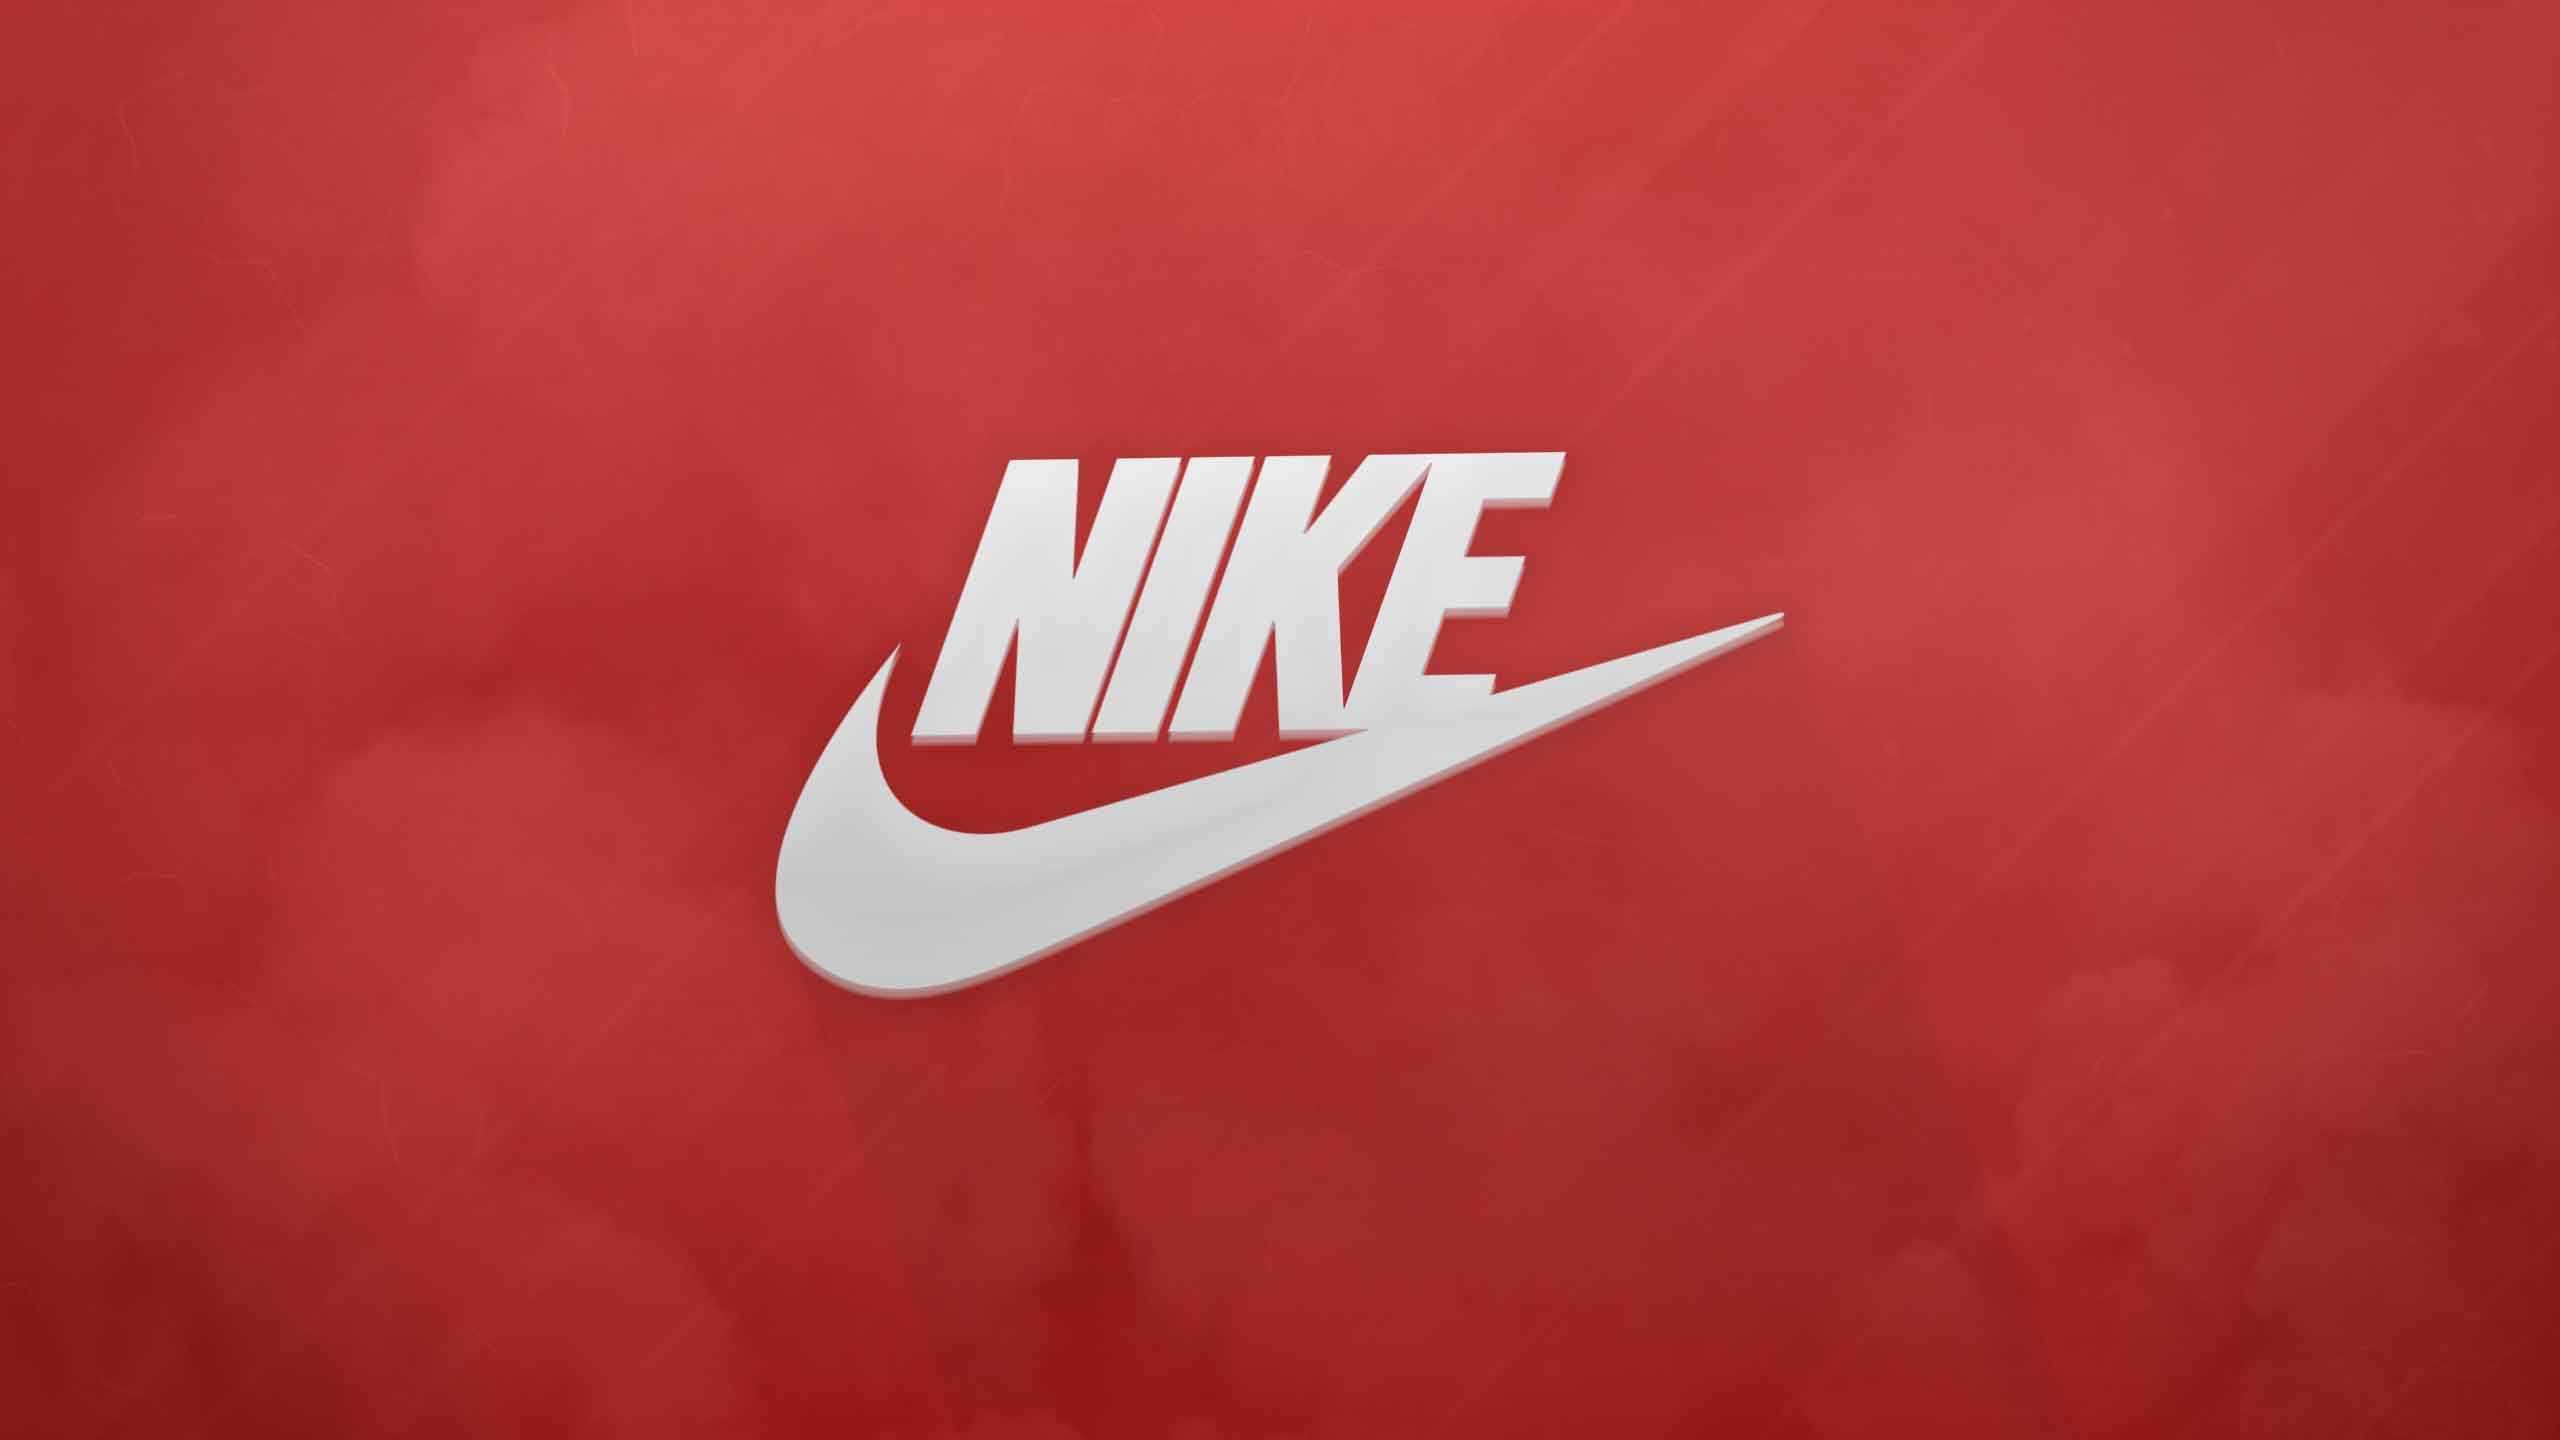 Download Nike Red Wallpaper Gallery